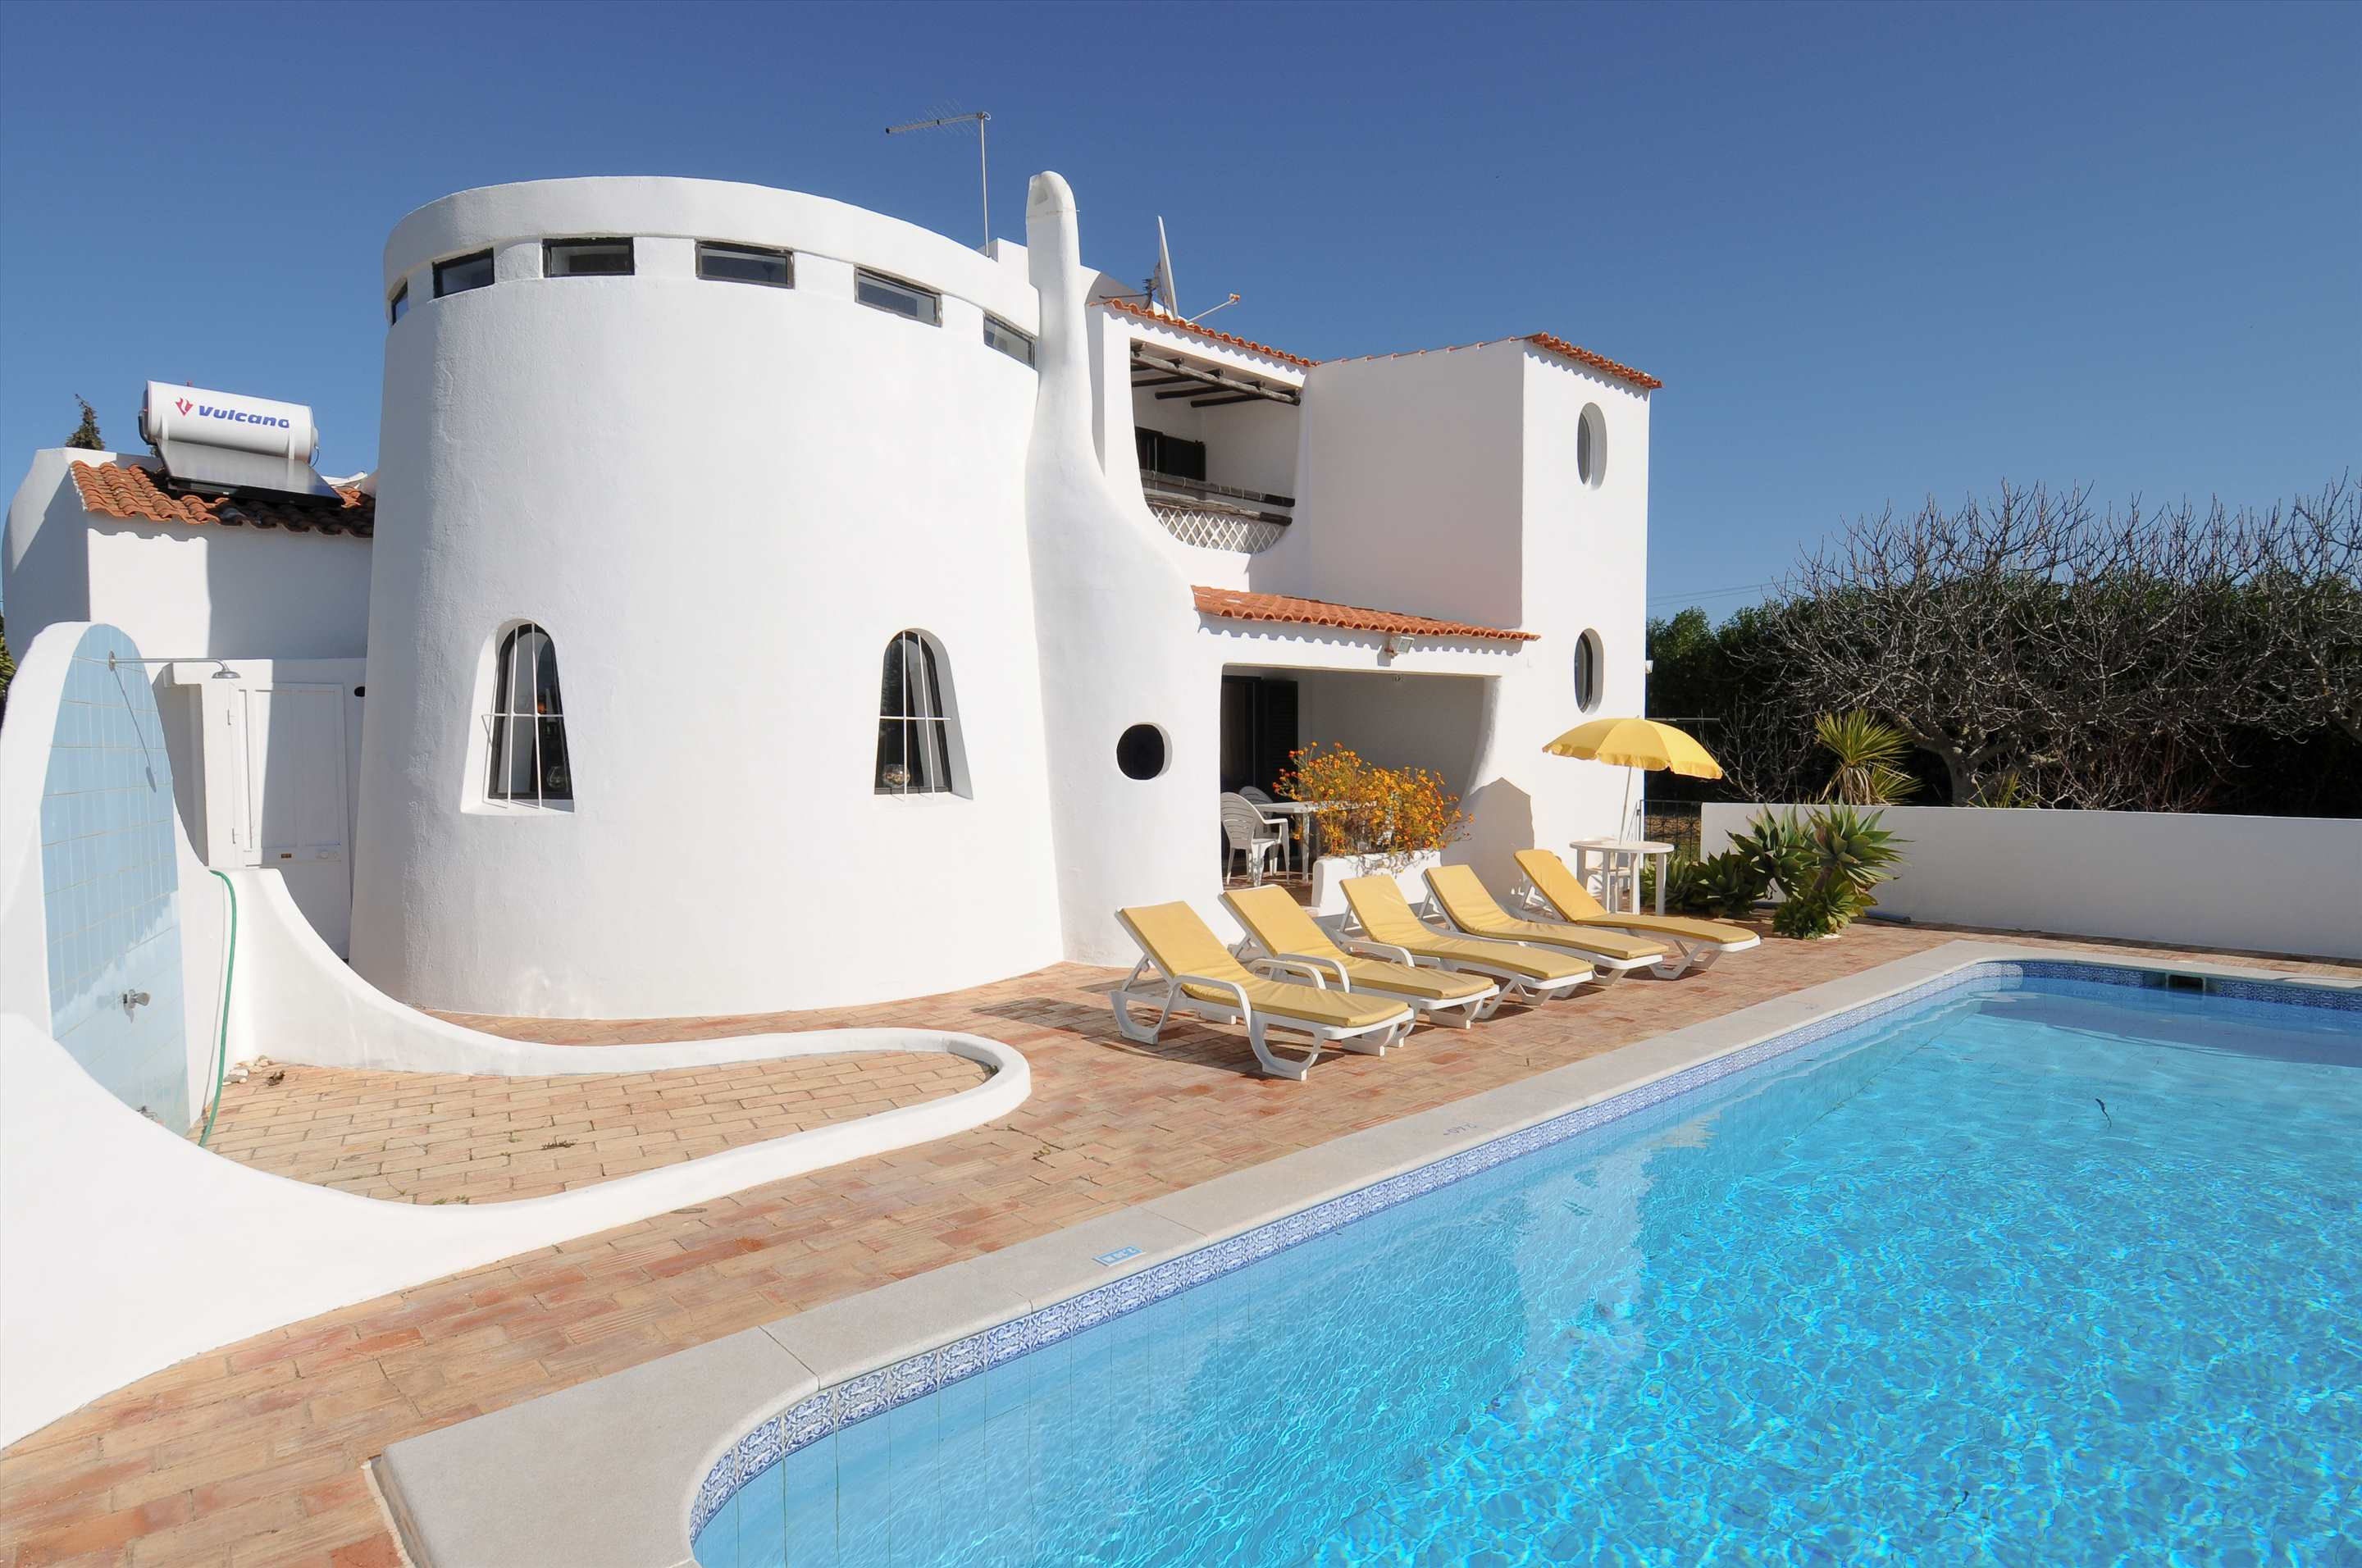 Casa Alexandra, 7-8 persons rate, 4 bedroom villa in Carvoeiro Area, Algarve